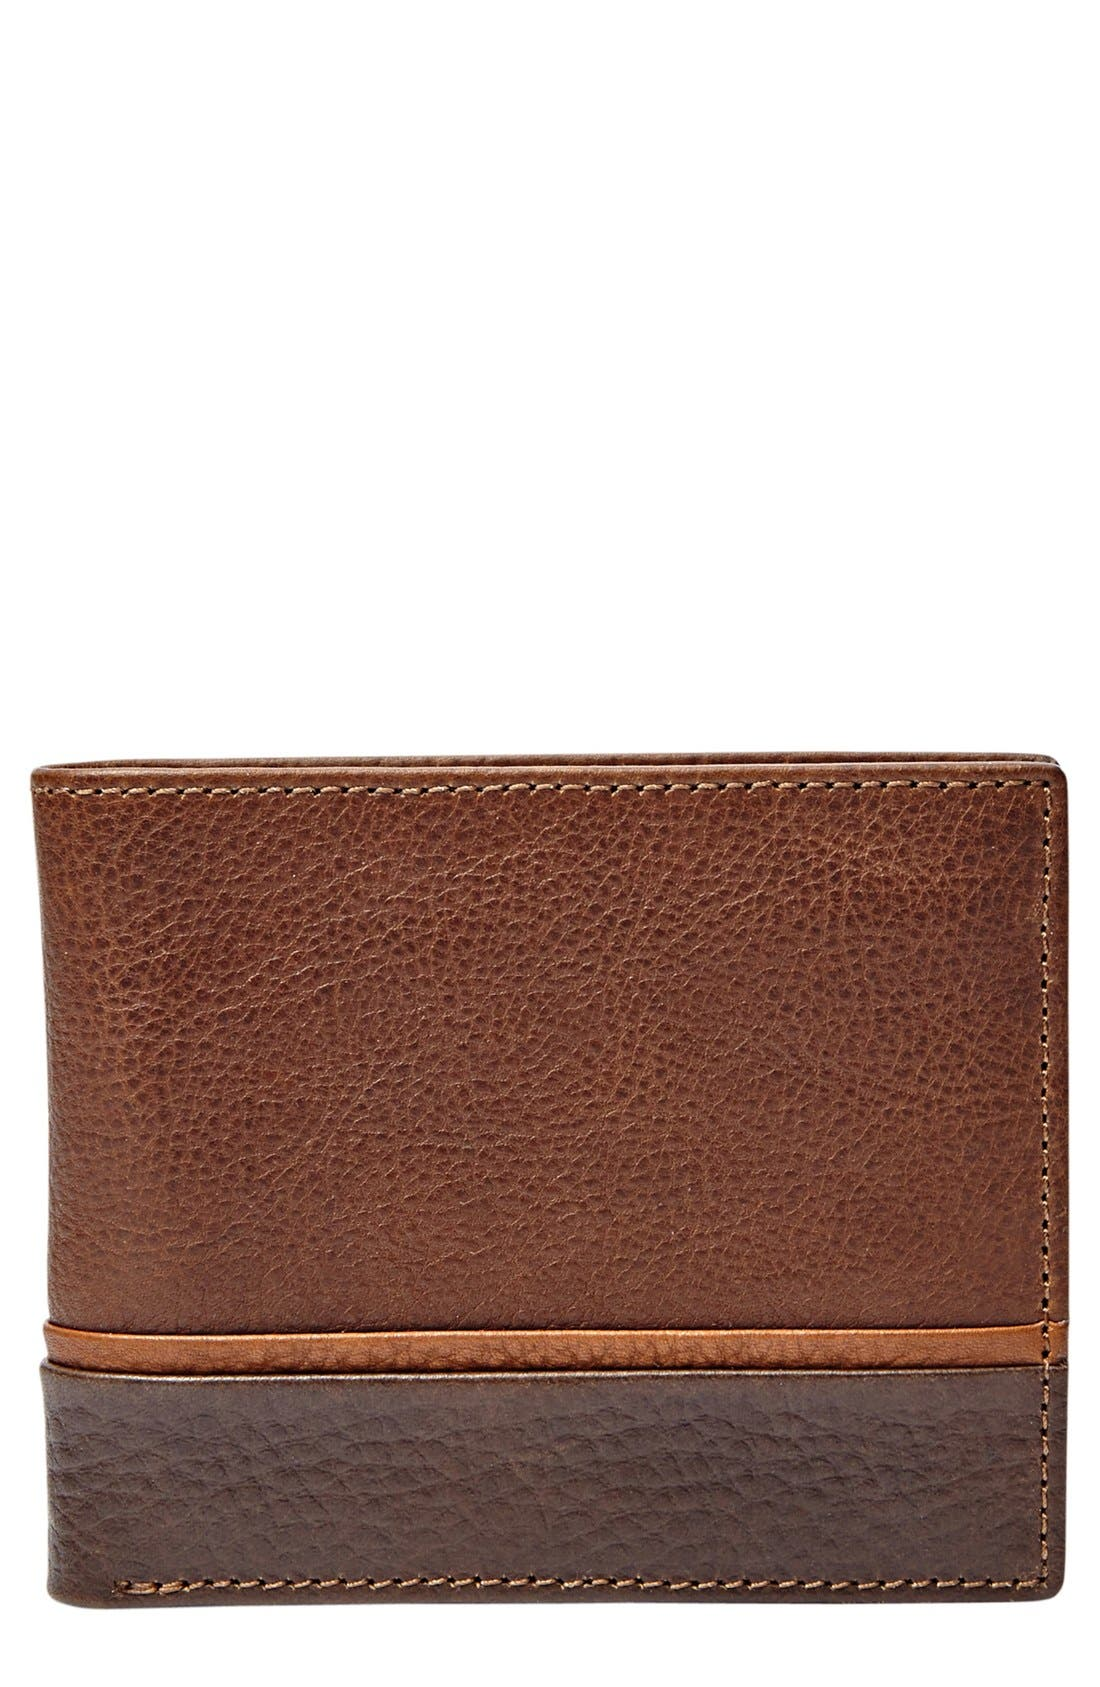 Fossil 'Ian' Leather Bifold Wallet